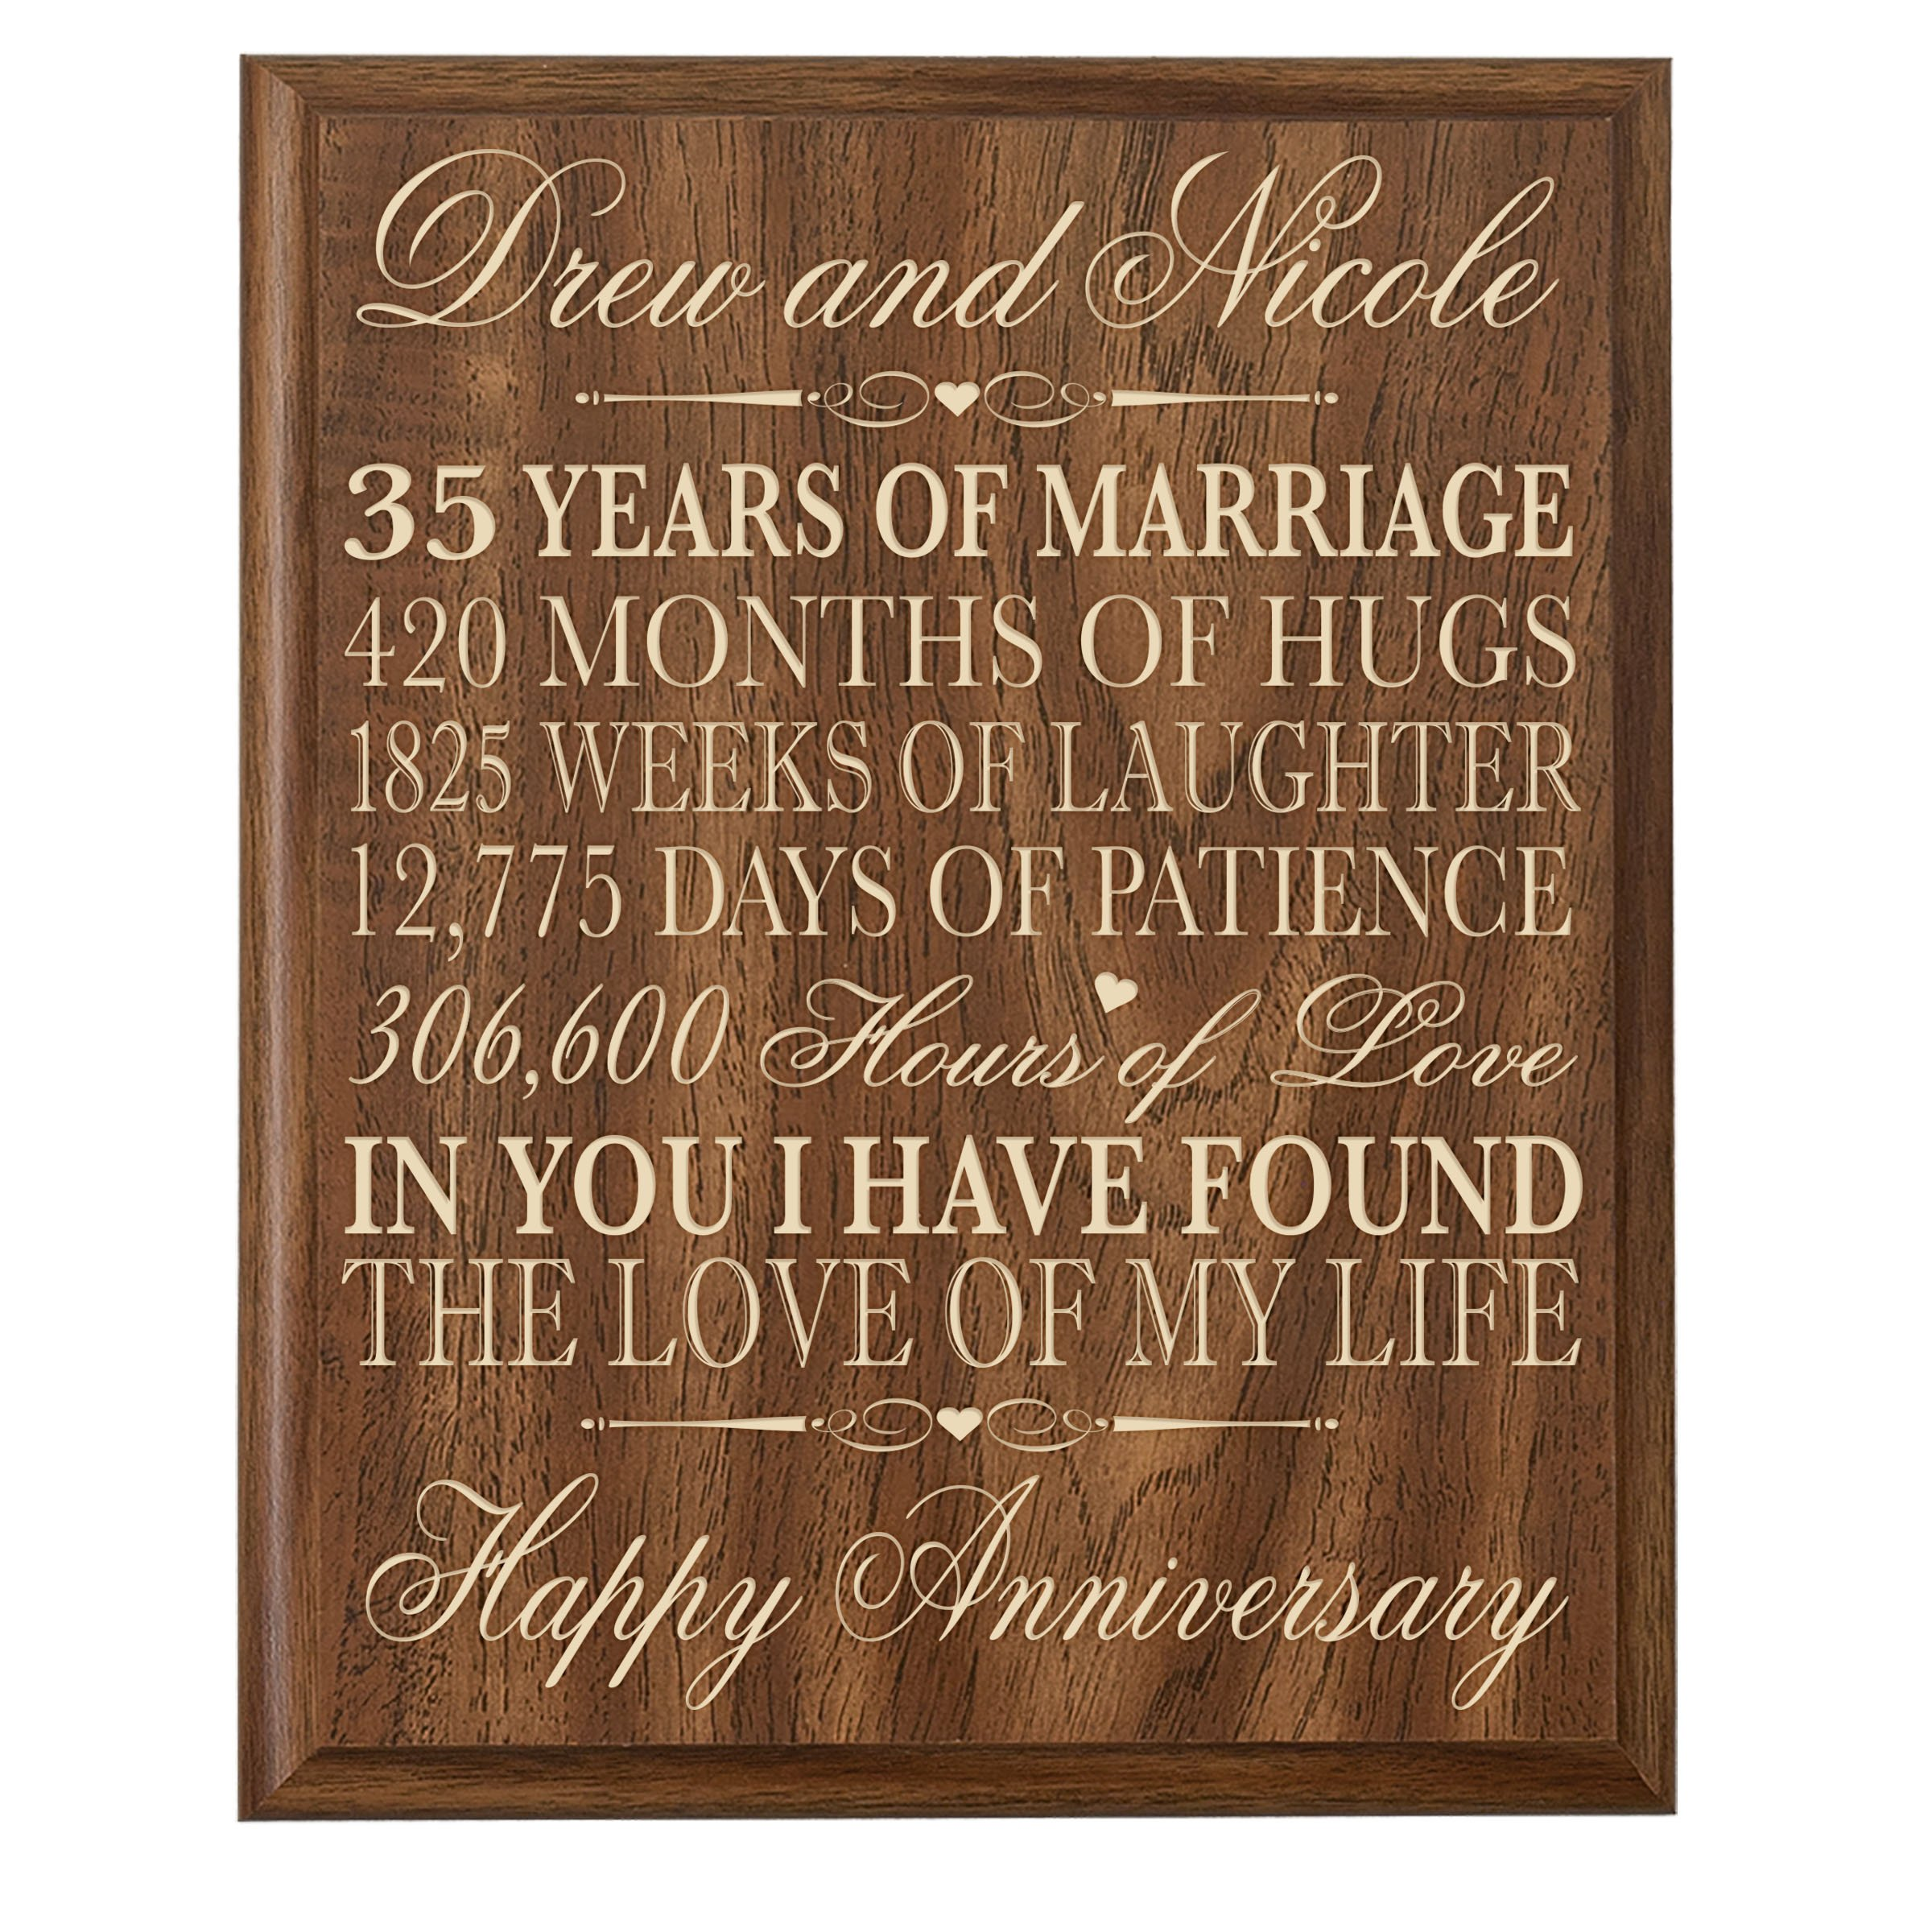 35th Wedding Anniversary Gift.Buy Personalized 35th Wedding Anniversary Gift For Couple